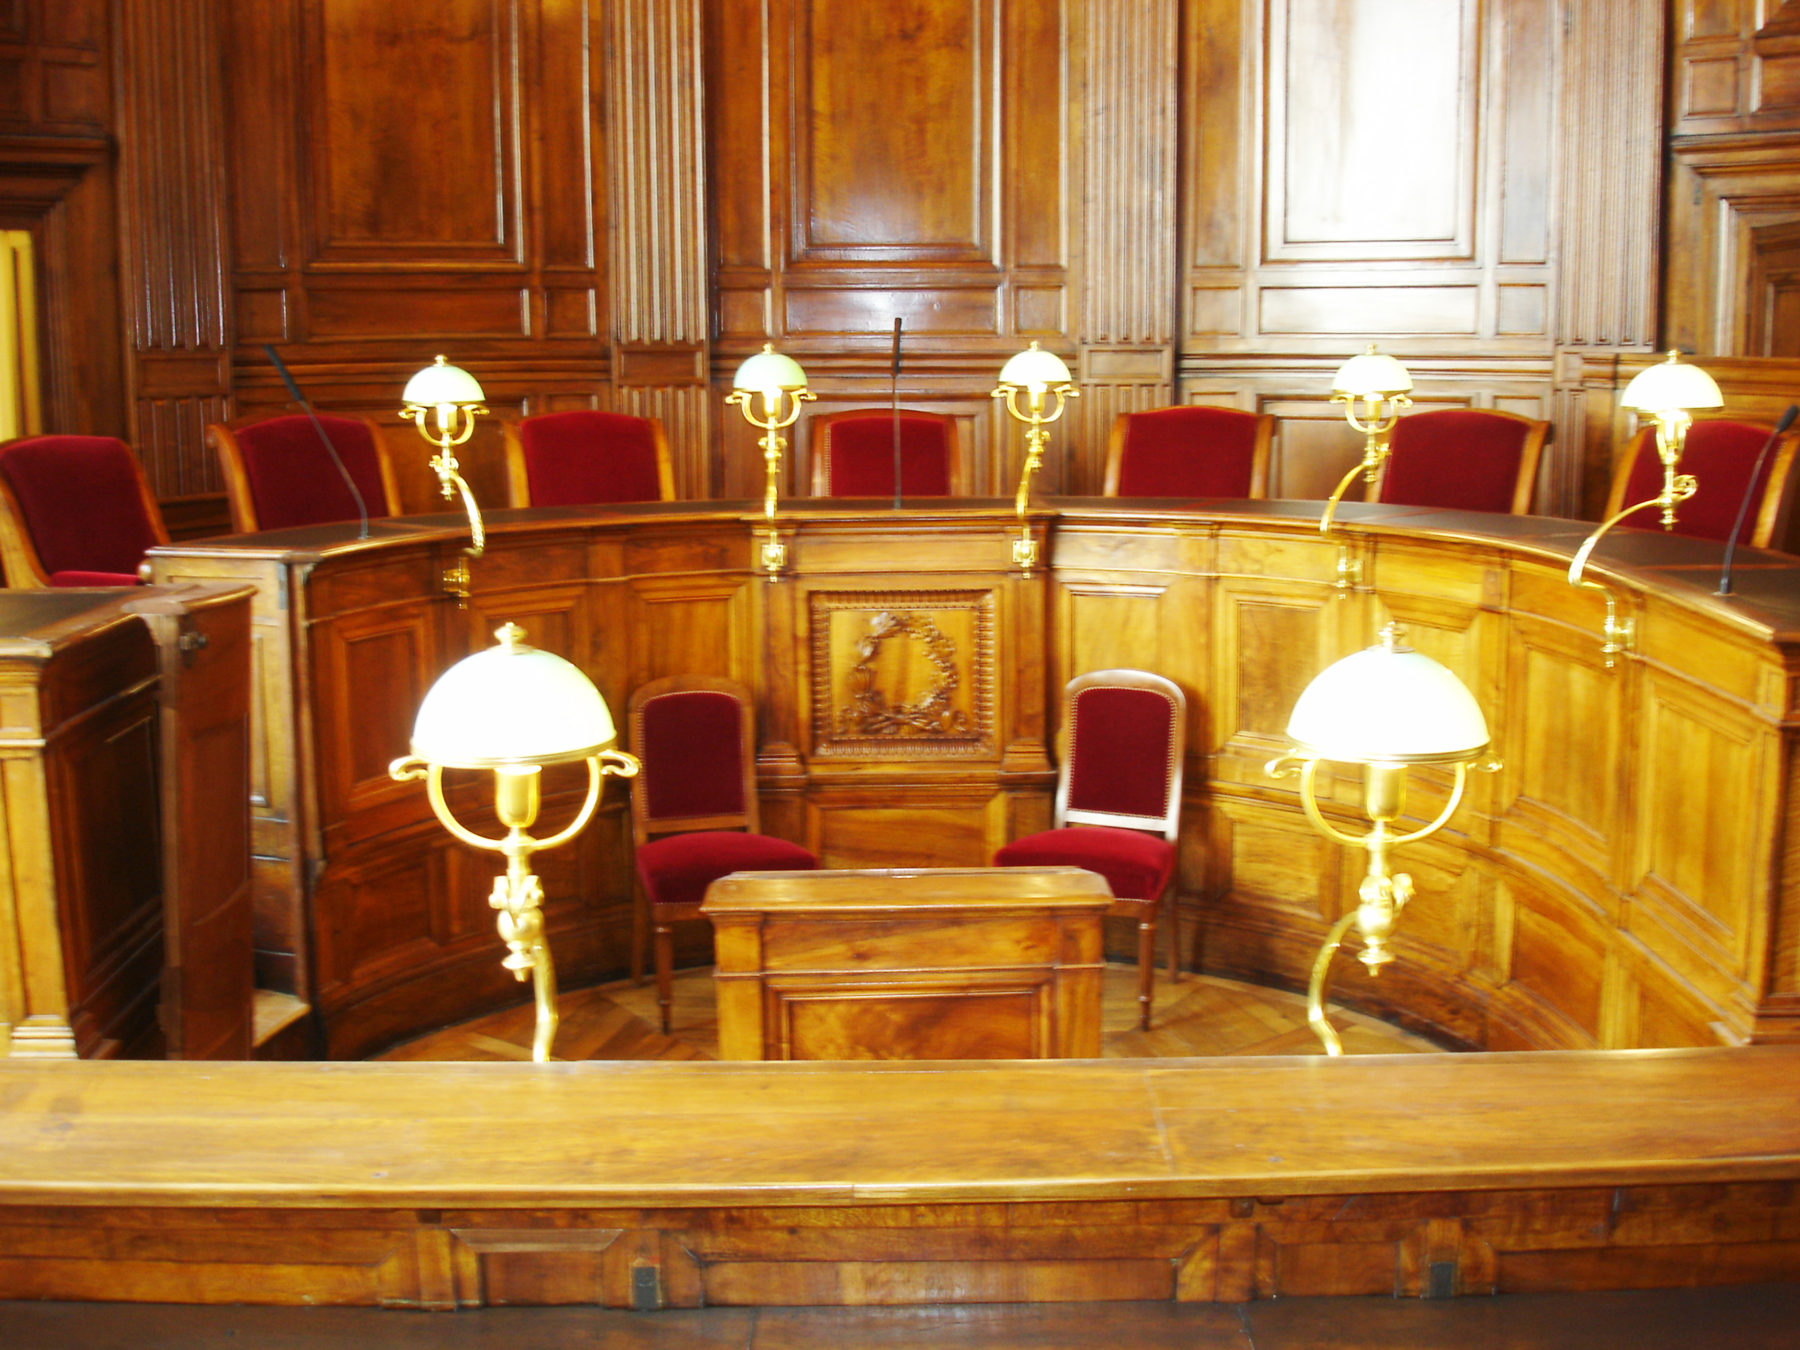 palais de justice 327 luc vaganay eb niste restaurateur de meubles anciens lyon. Black Bedroom Furniture Sets. Home Design Ideas